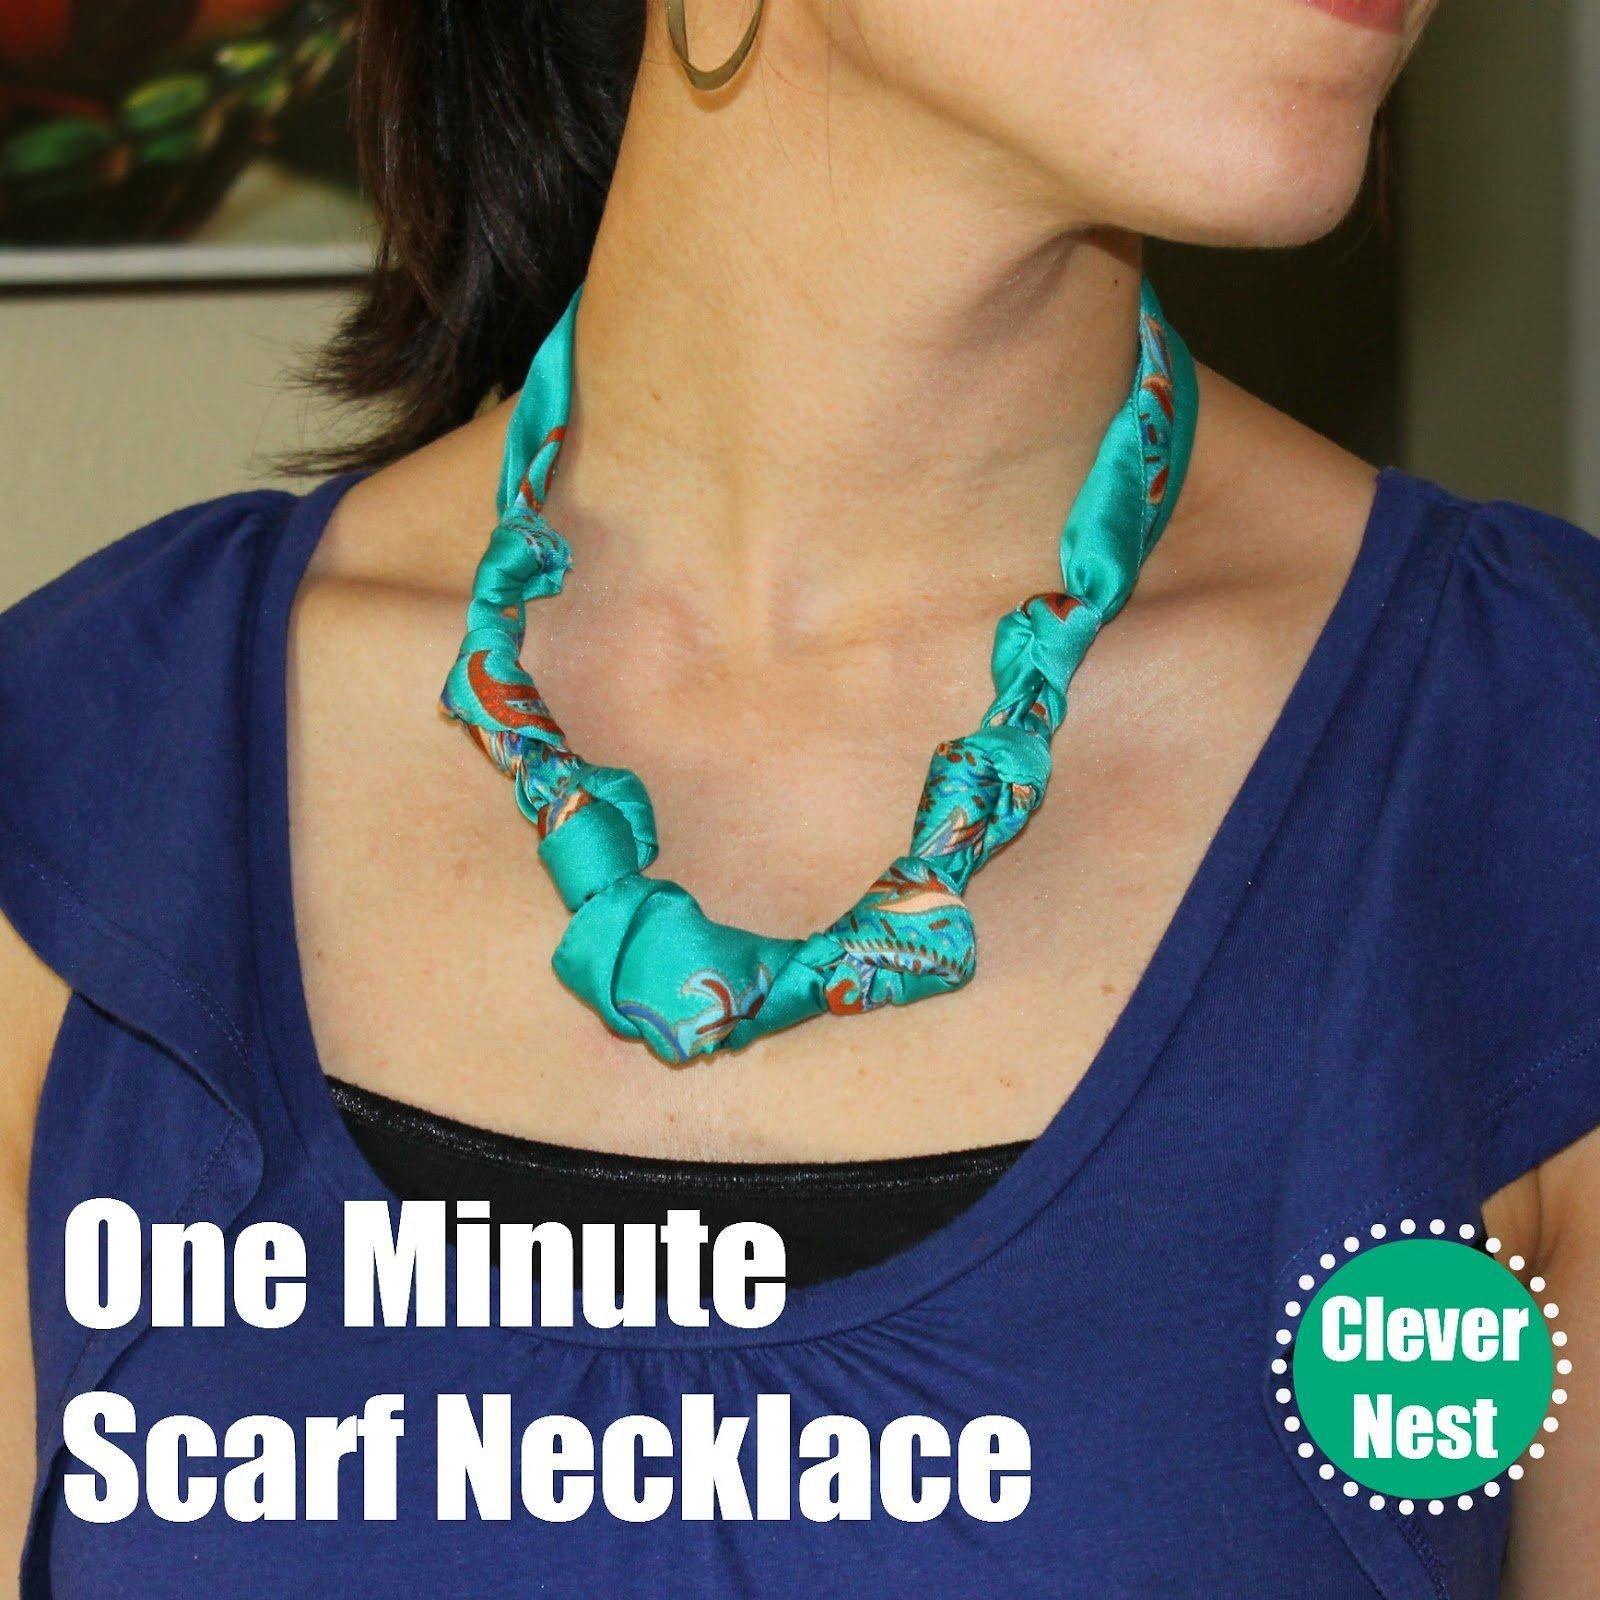 One Minute Scarf Necklace